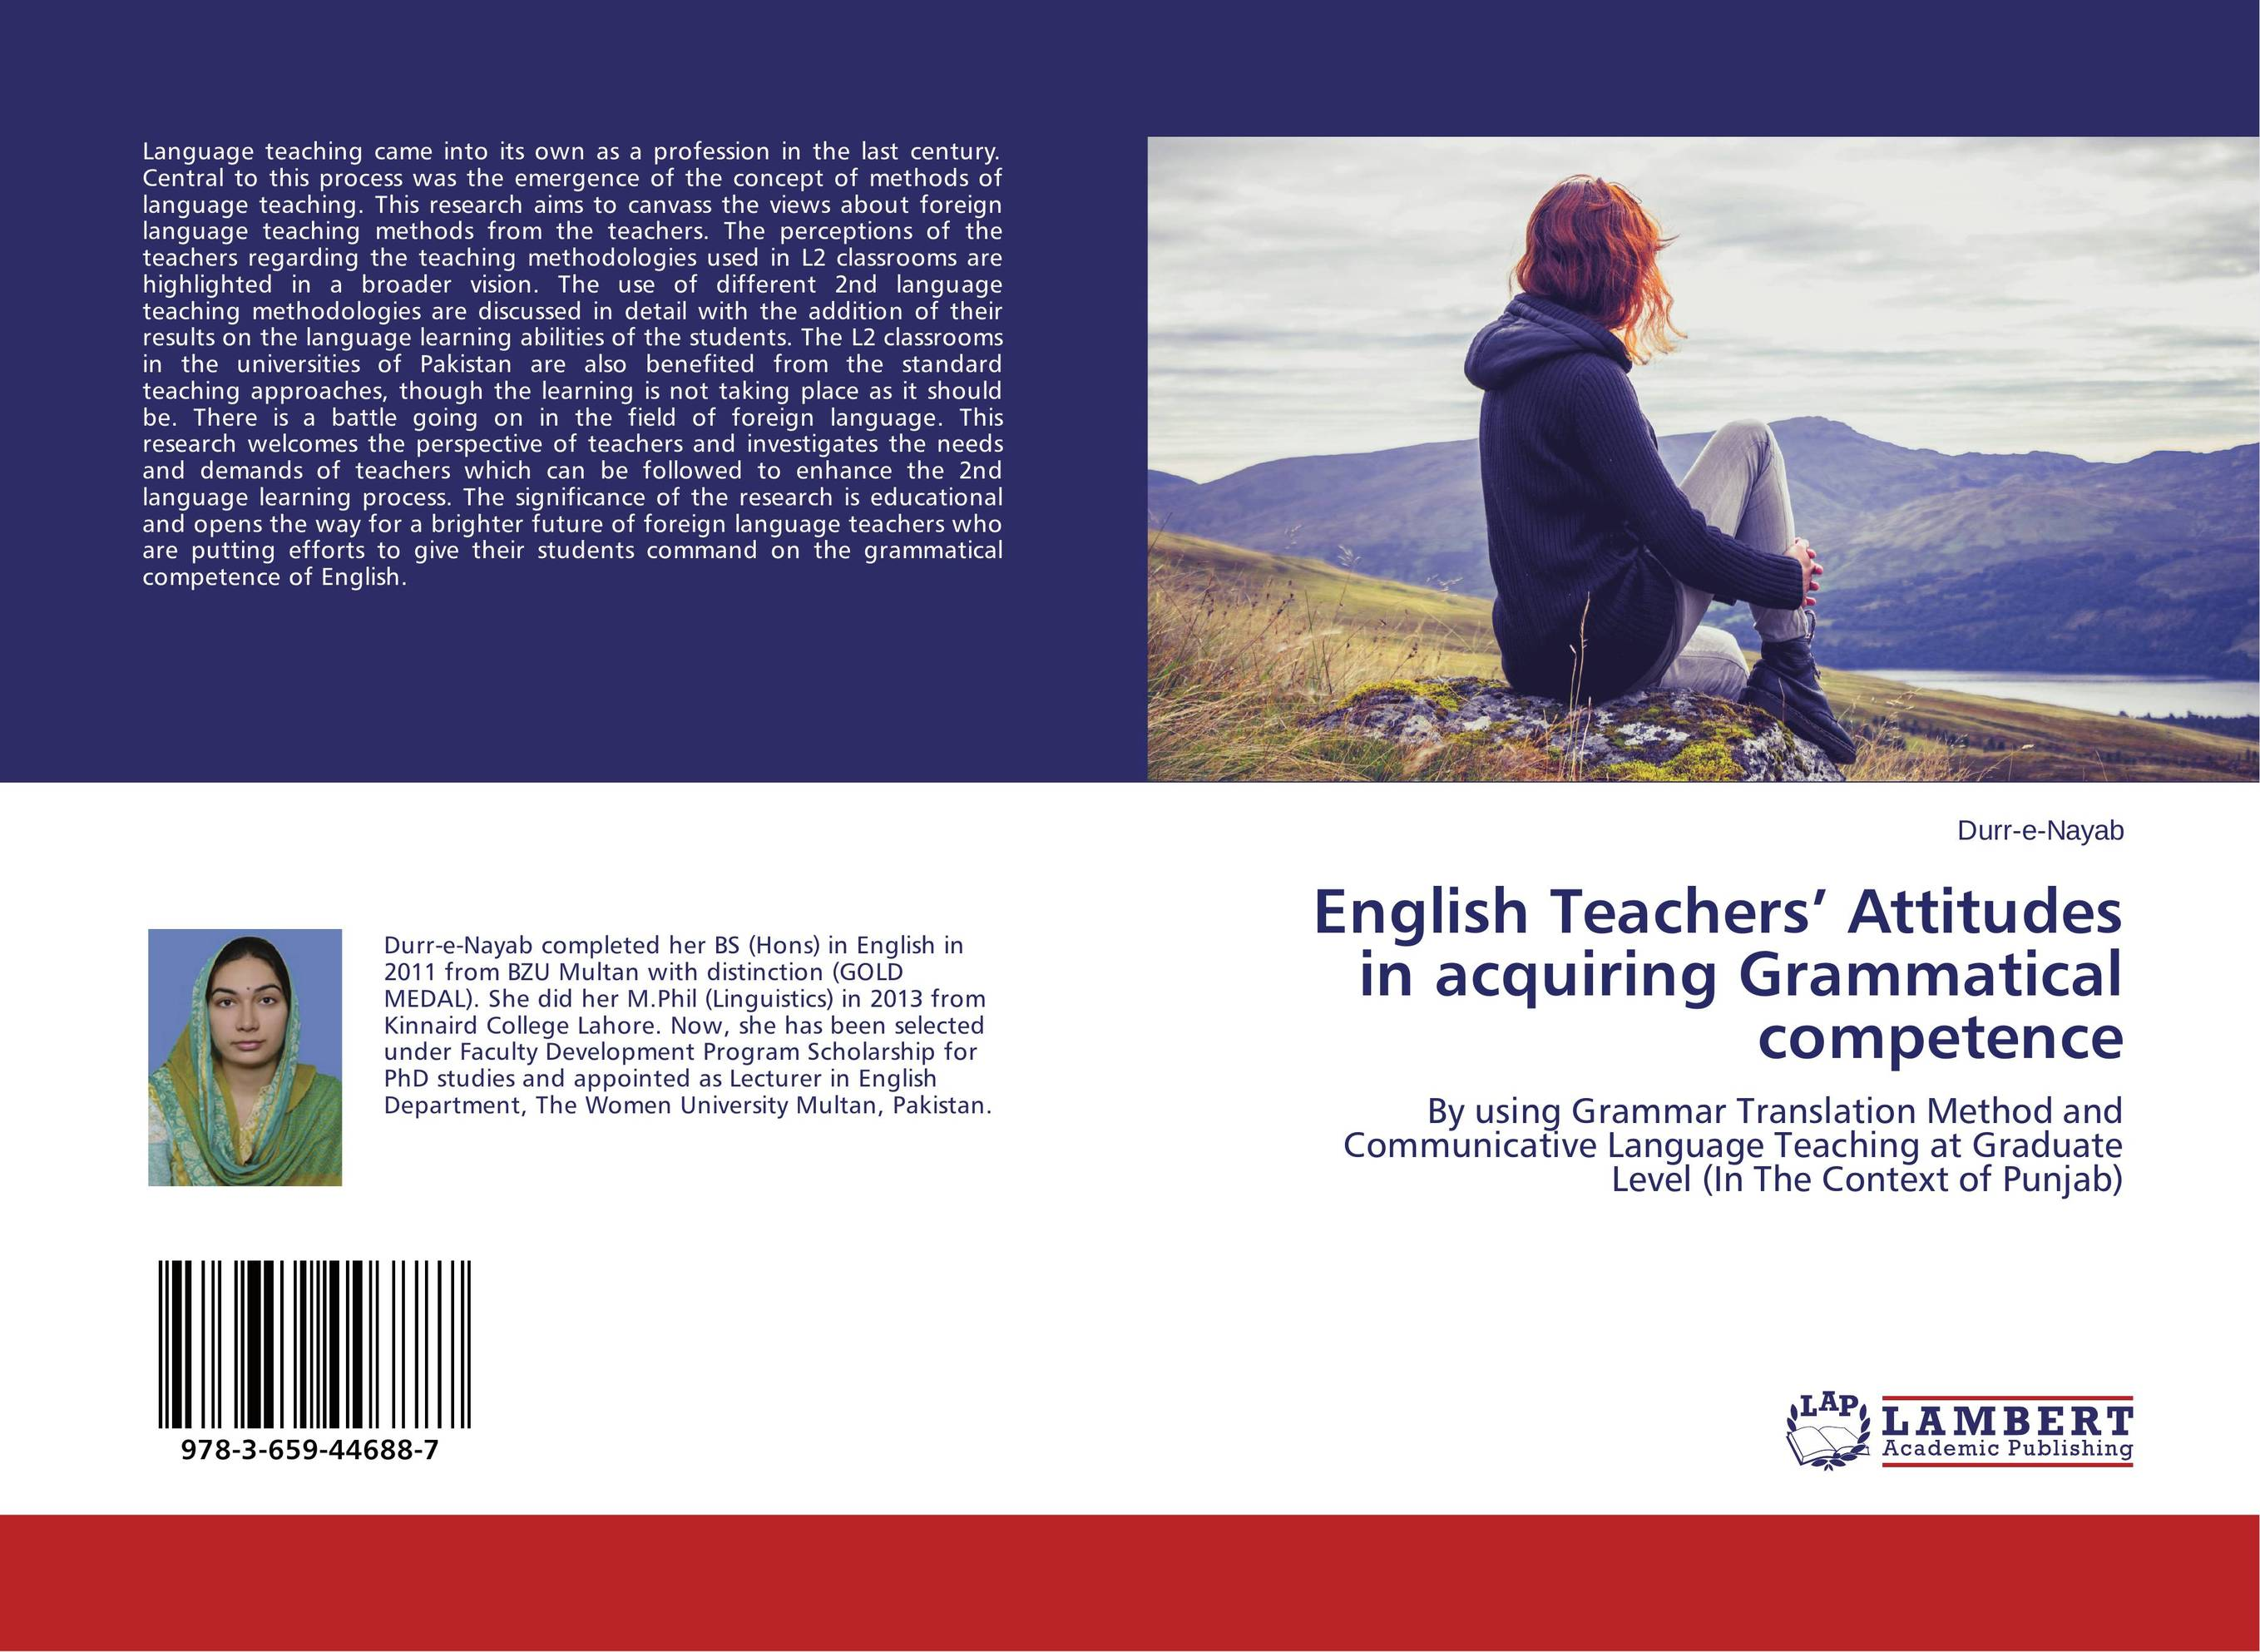 English Teachers' Attitudes in acquiring Grammatical competence english teachers' attitudes in acquiring grammatical competence